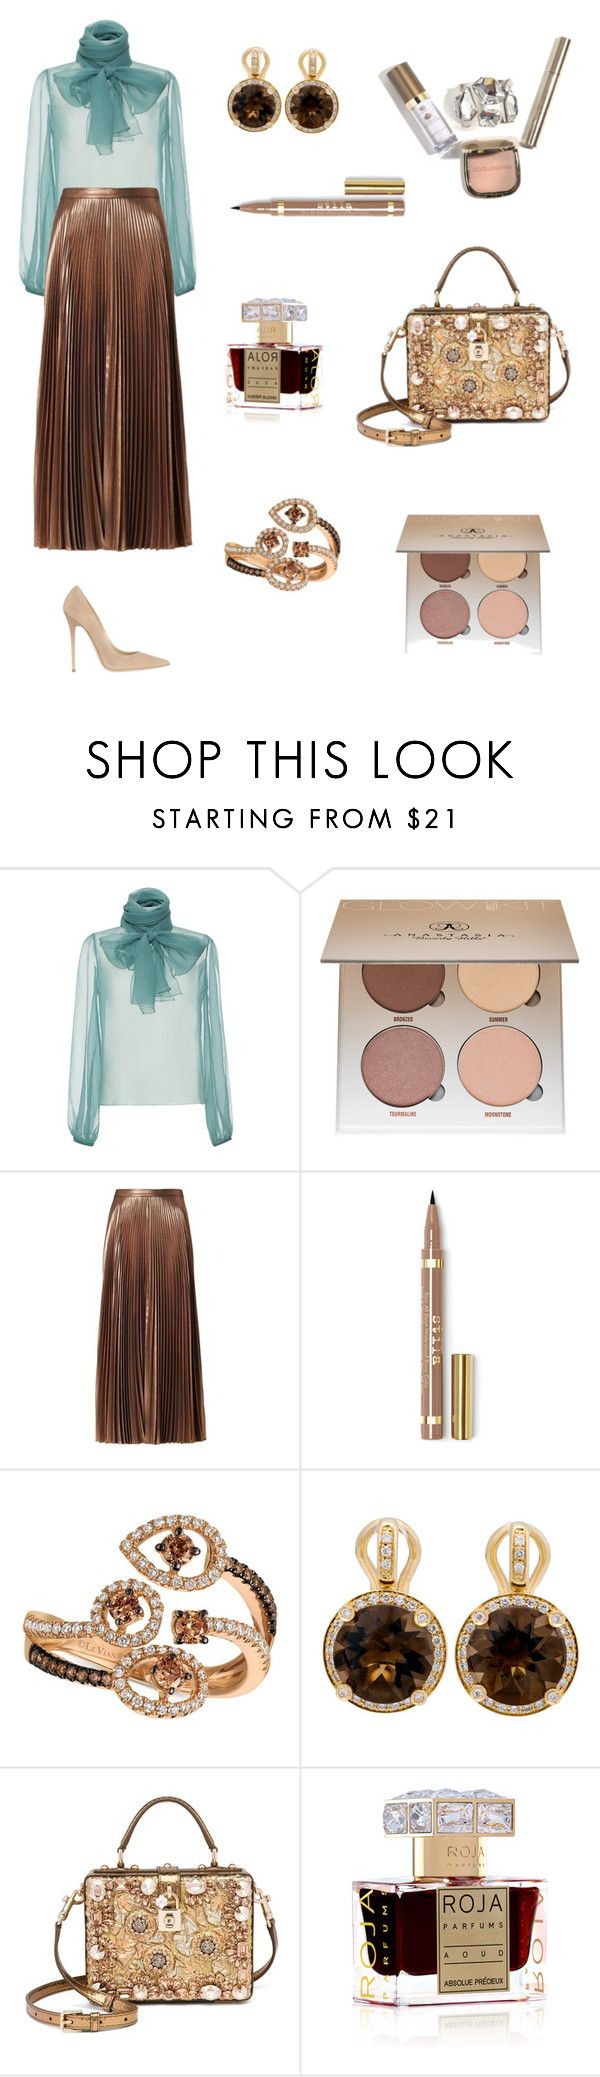 """Untitled #40"" by parvinn8 ❤ liked on Polyvore featuring Rochas, Anastasia Beverly Hills, A.L.C., LE VIAN, Poiray Paris, Dolce&Gabbana, Roja Parfums and Jimmy Choo"